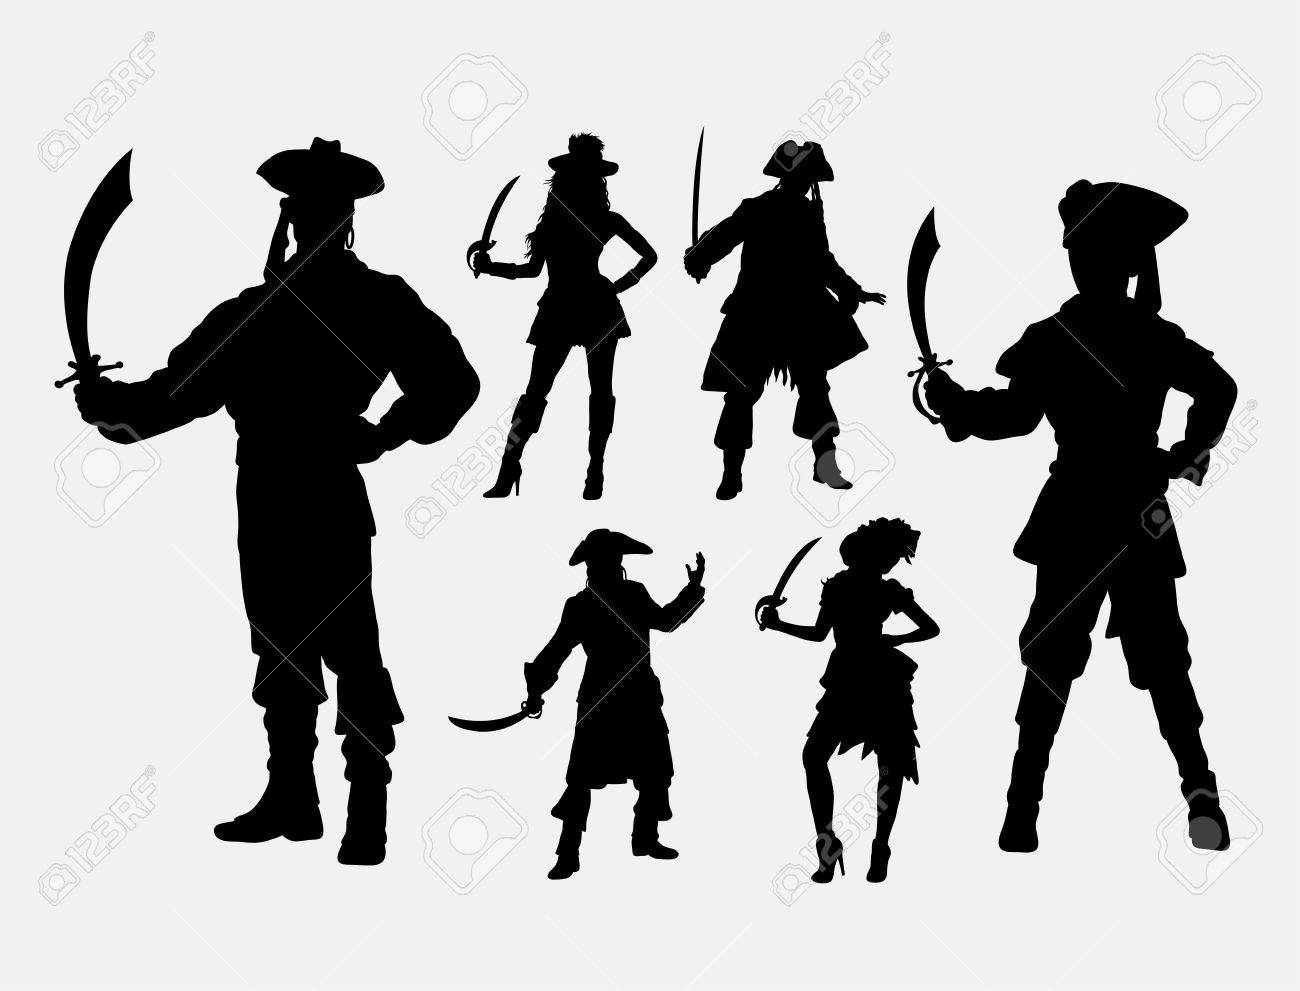 Pirates male and female silhouette good use for symbol web icon logo